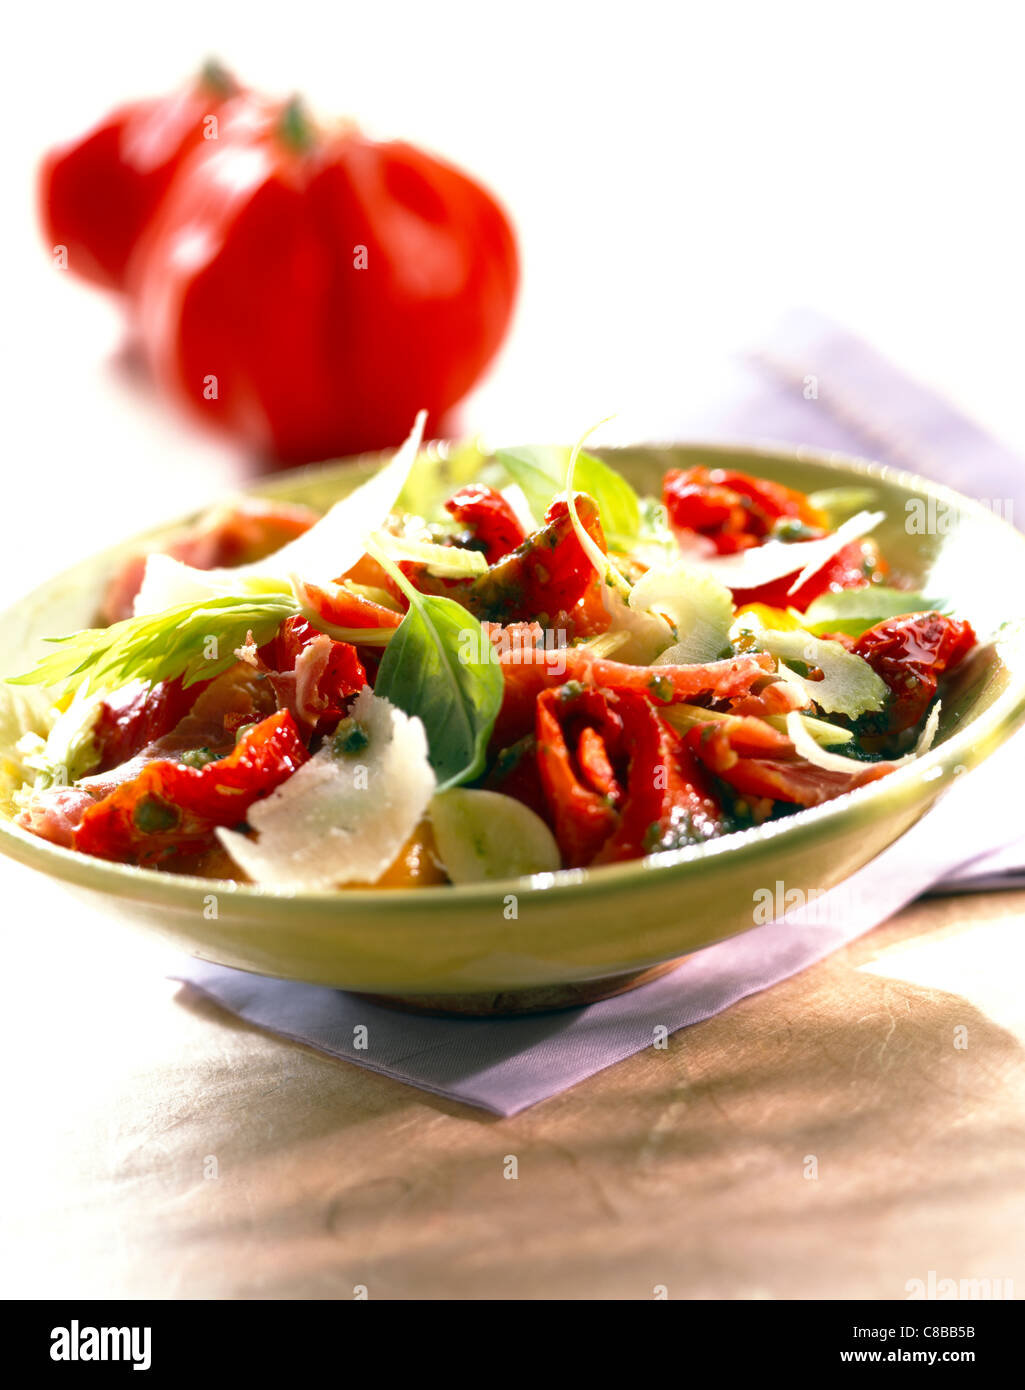 marinated peppers, preserved tomato and parmesan salad - Stock Image